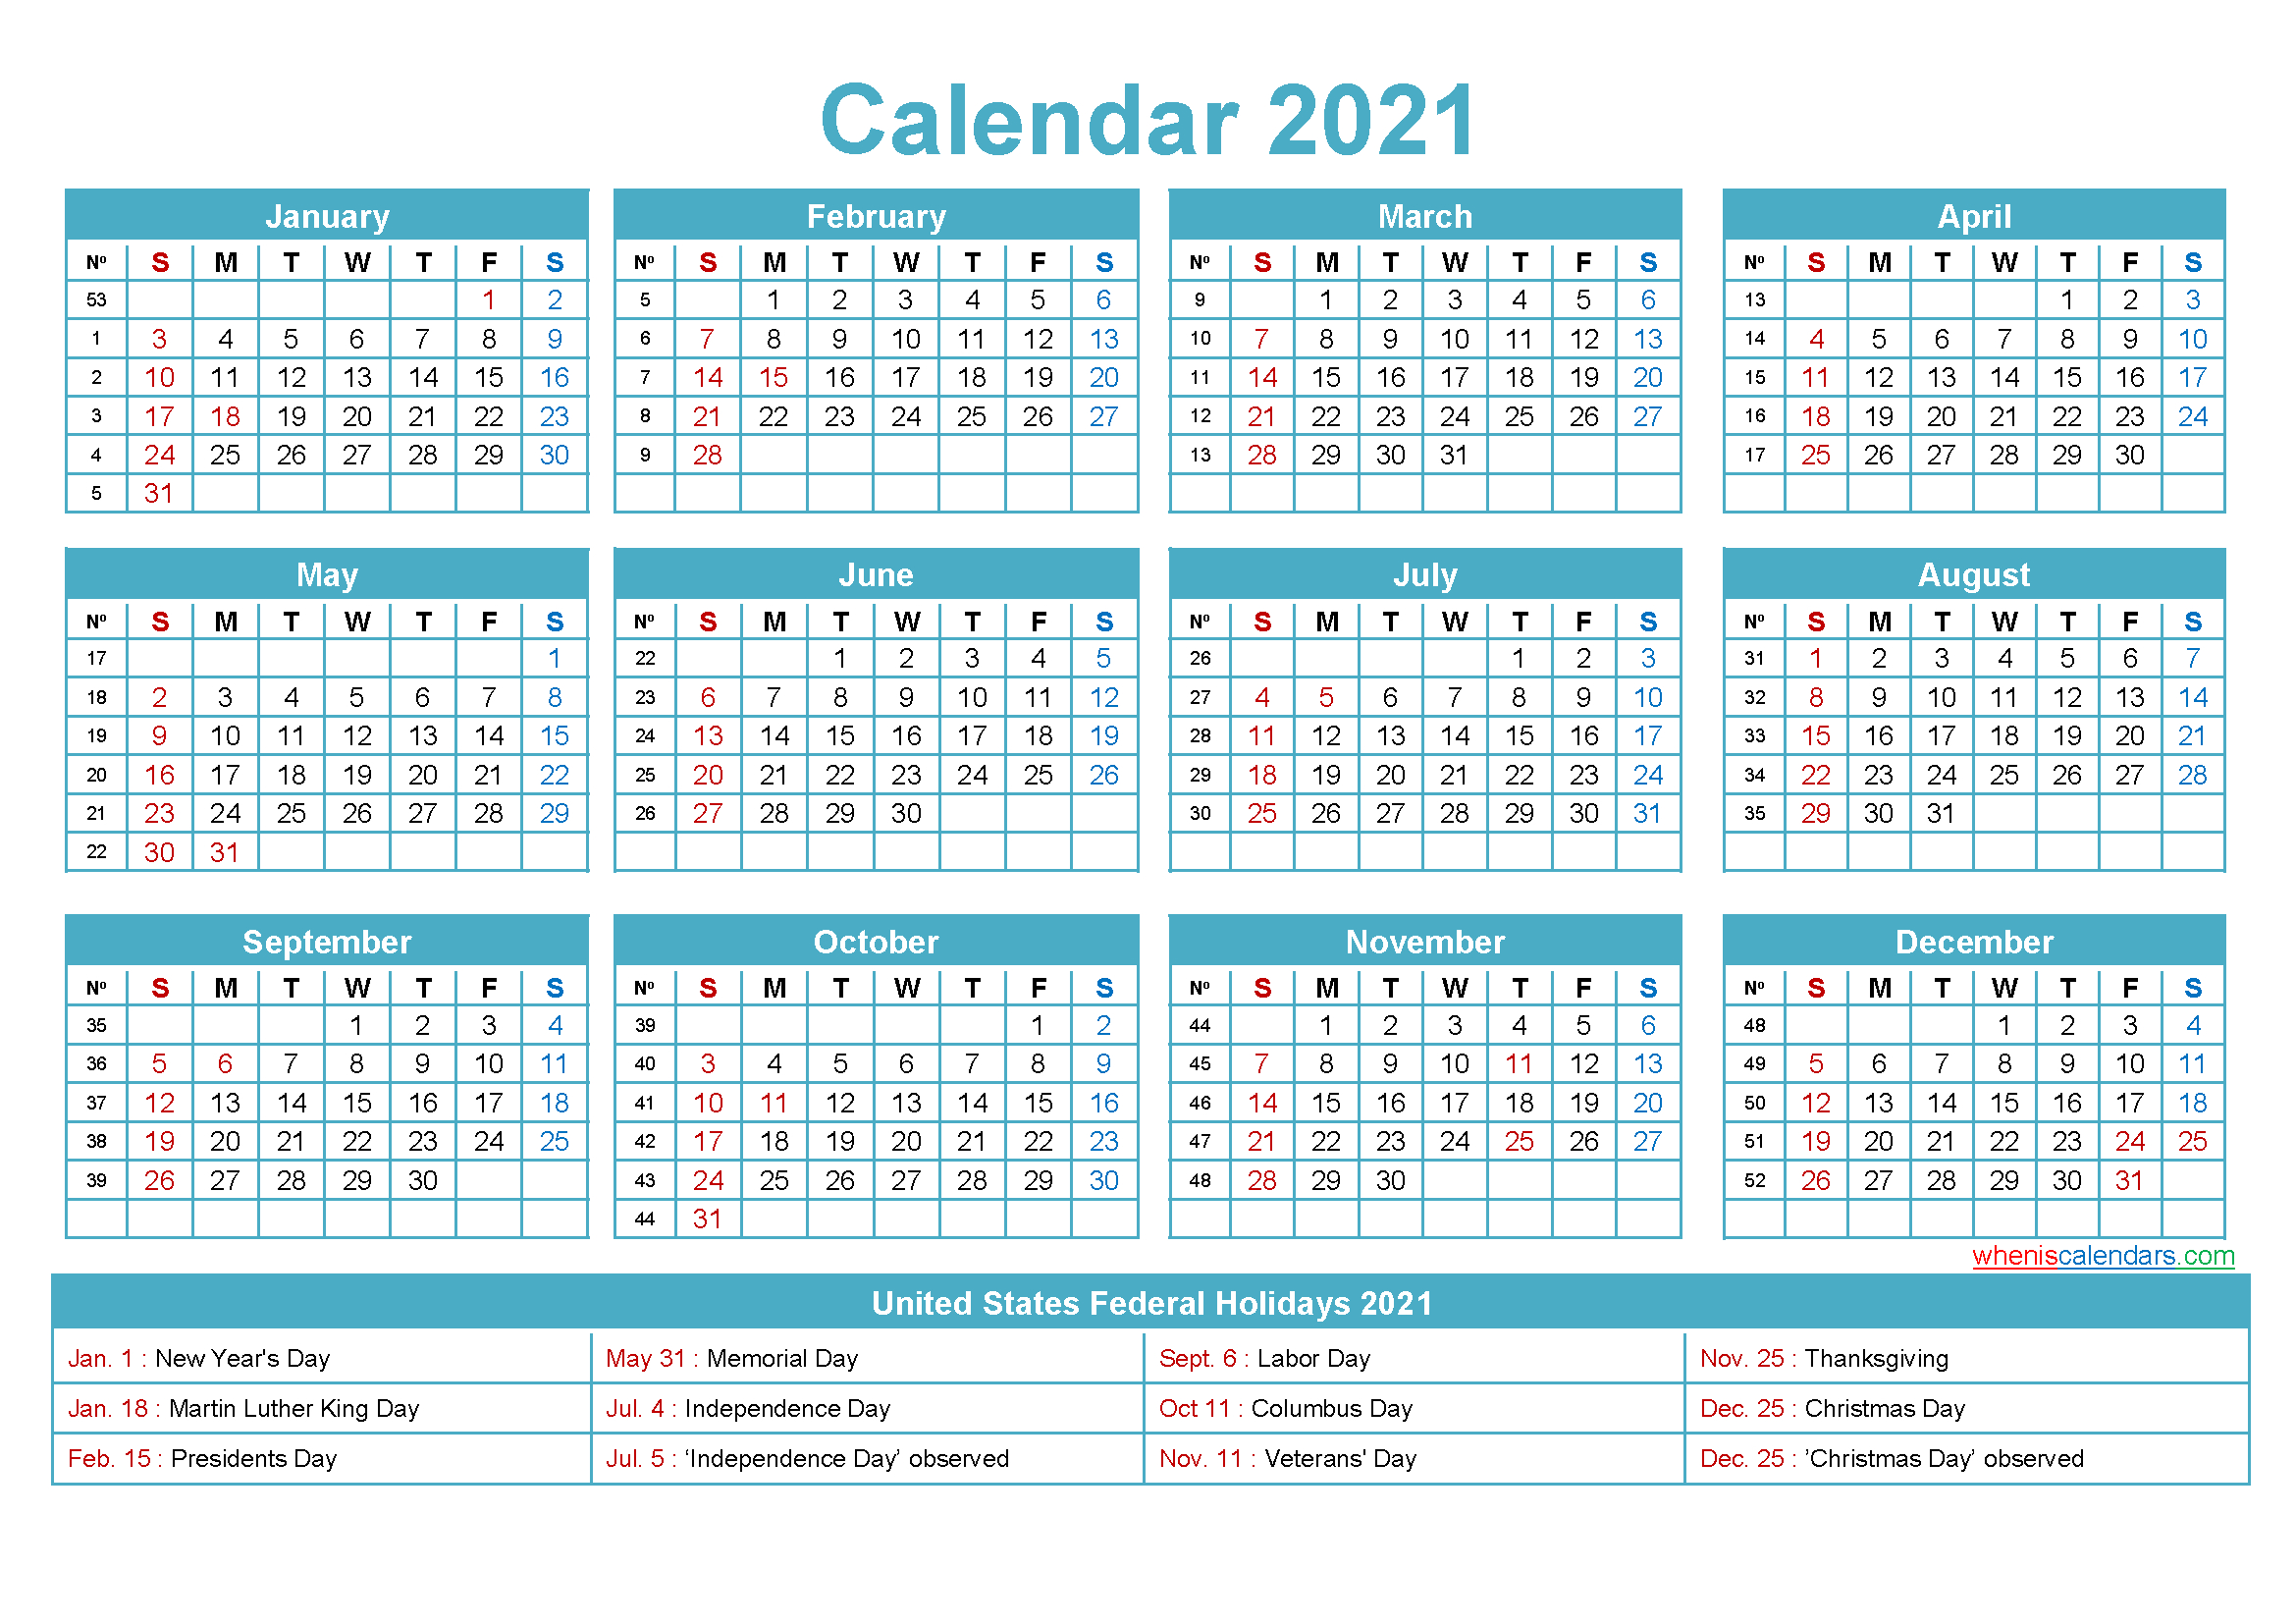 Free Editable Printable Calendar 2021 - Template No.ep21Y5-2021 Calendars To Fill In And Print